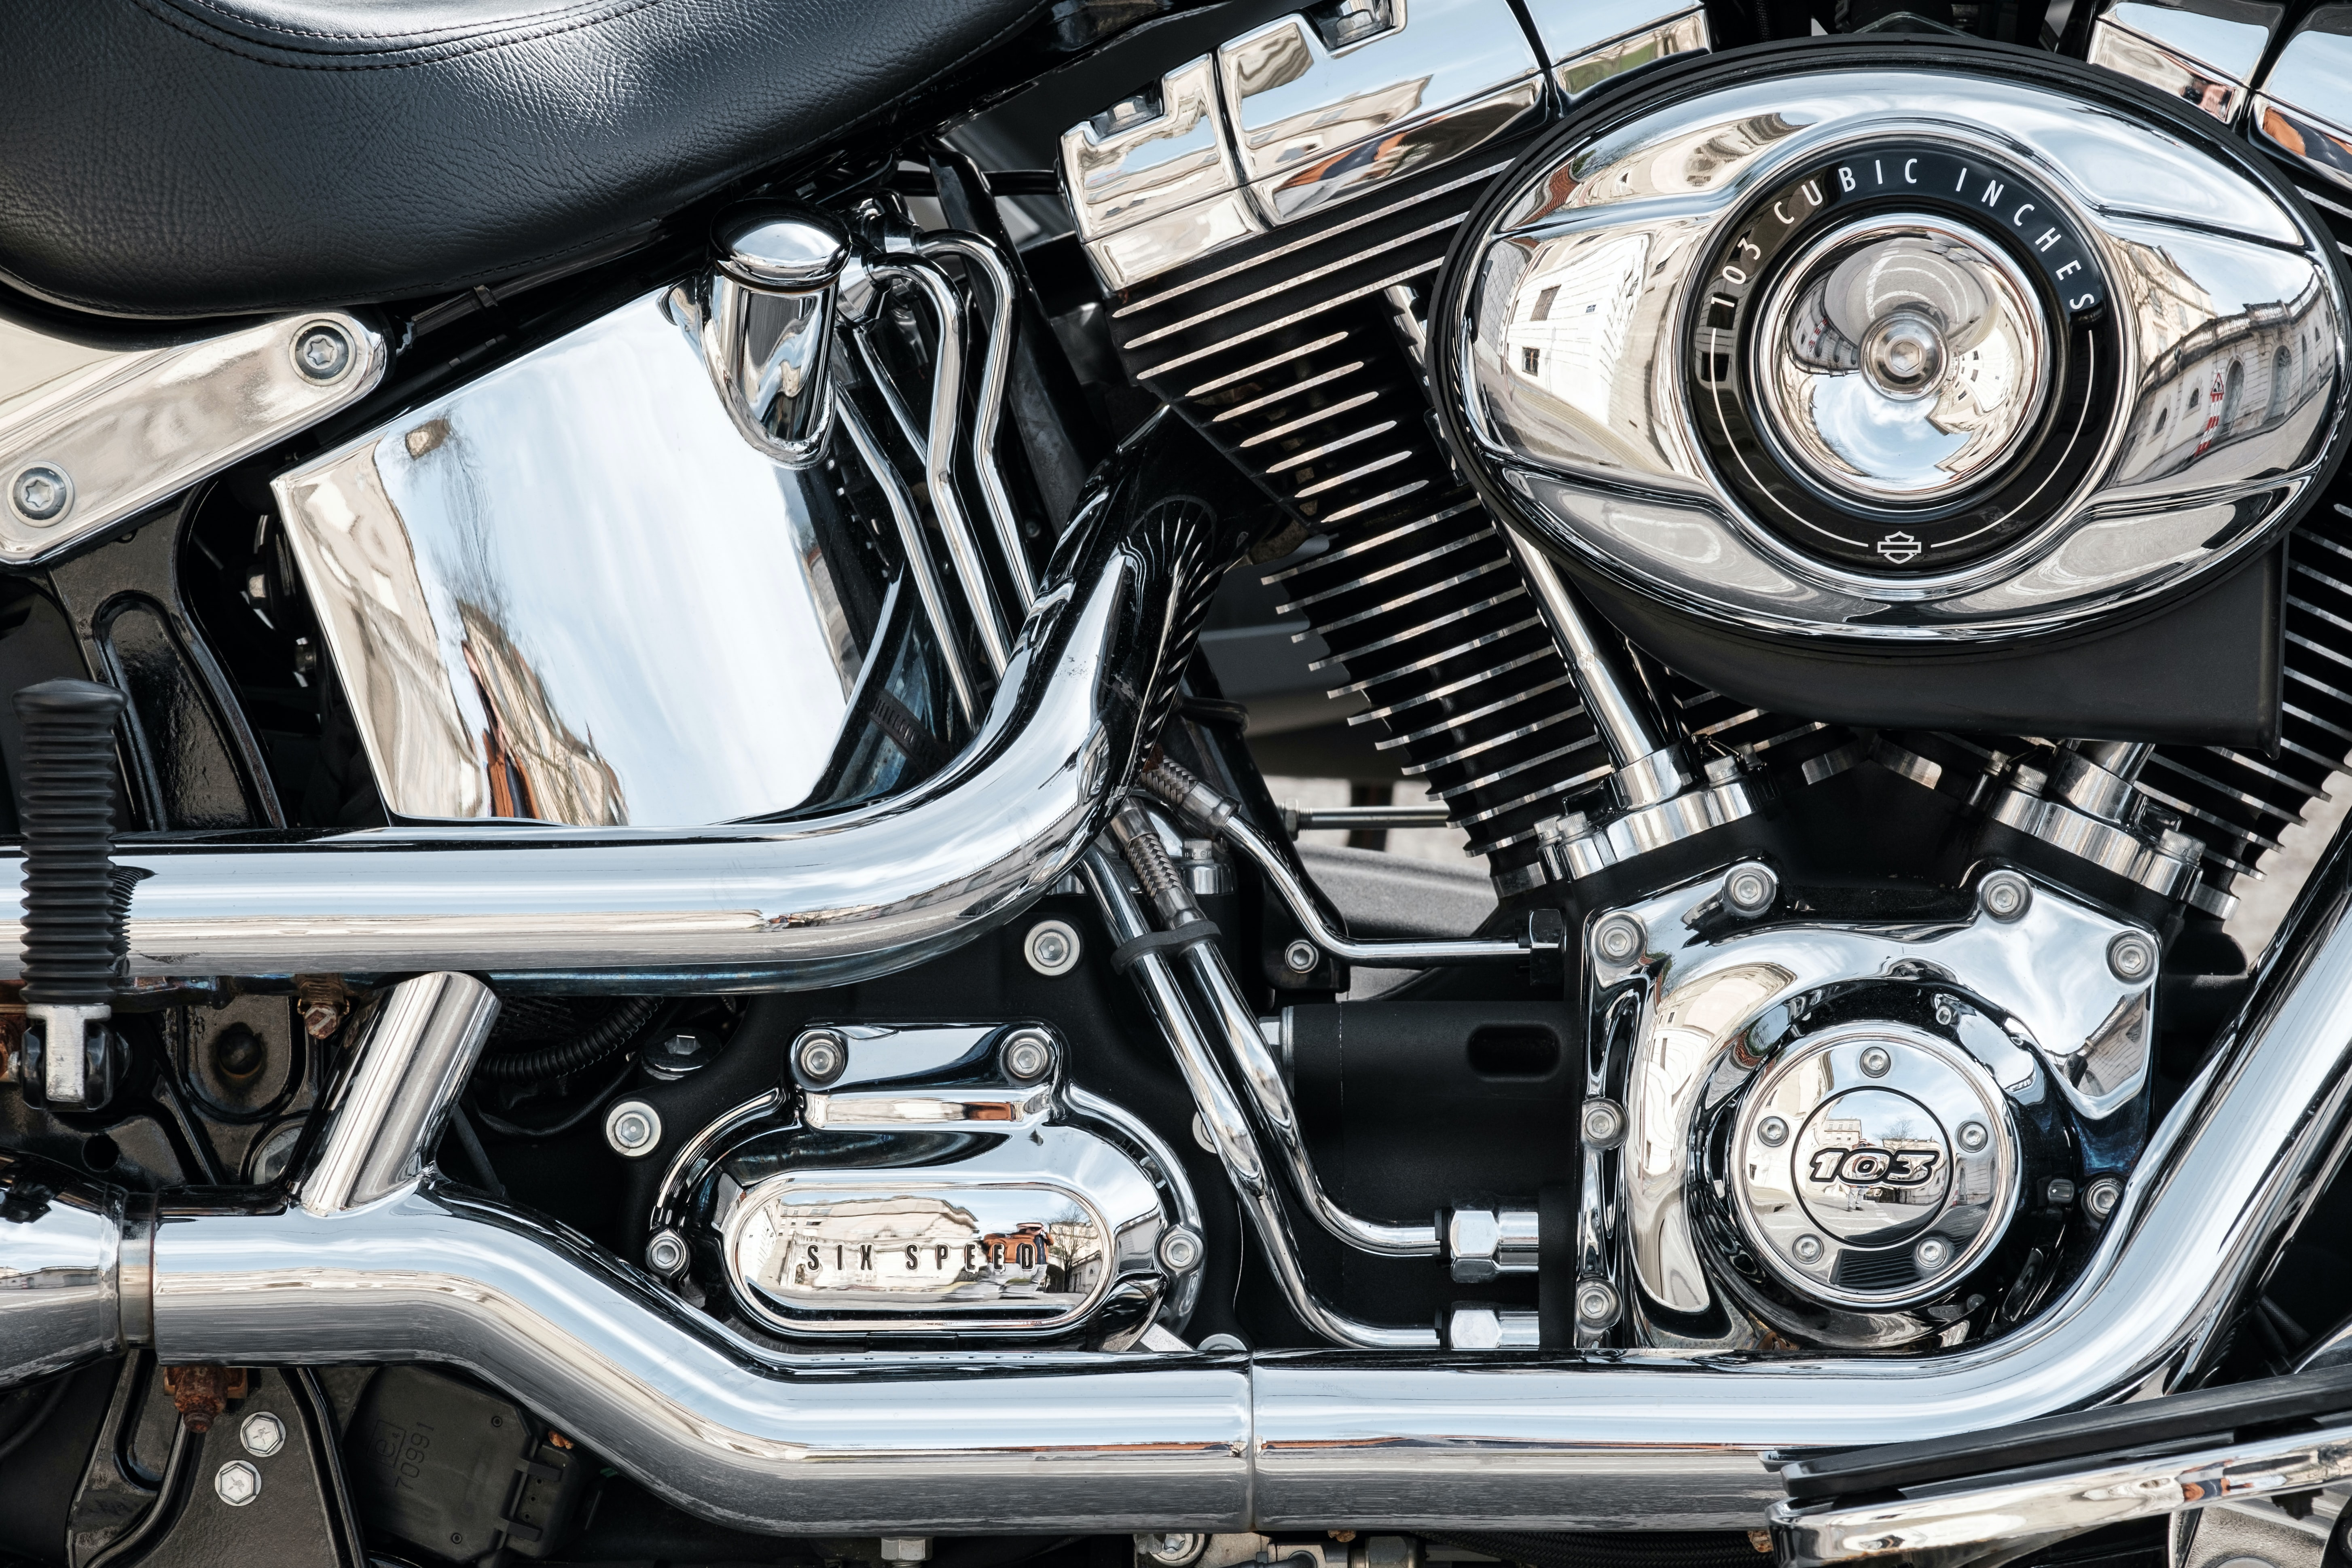 shallow focus photography of gray motorcycle engine